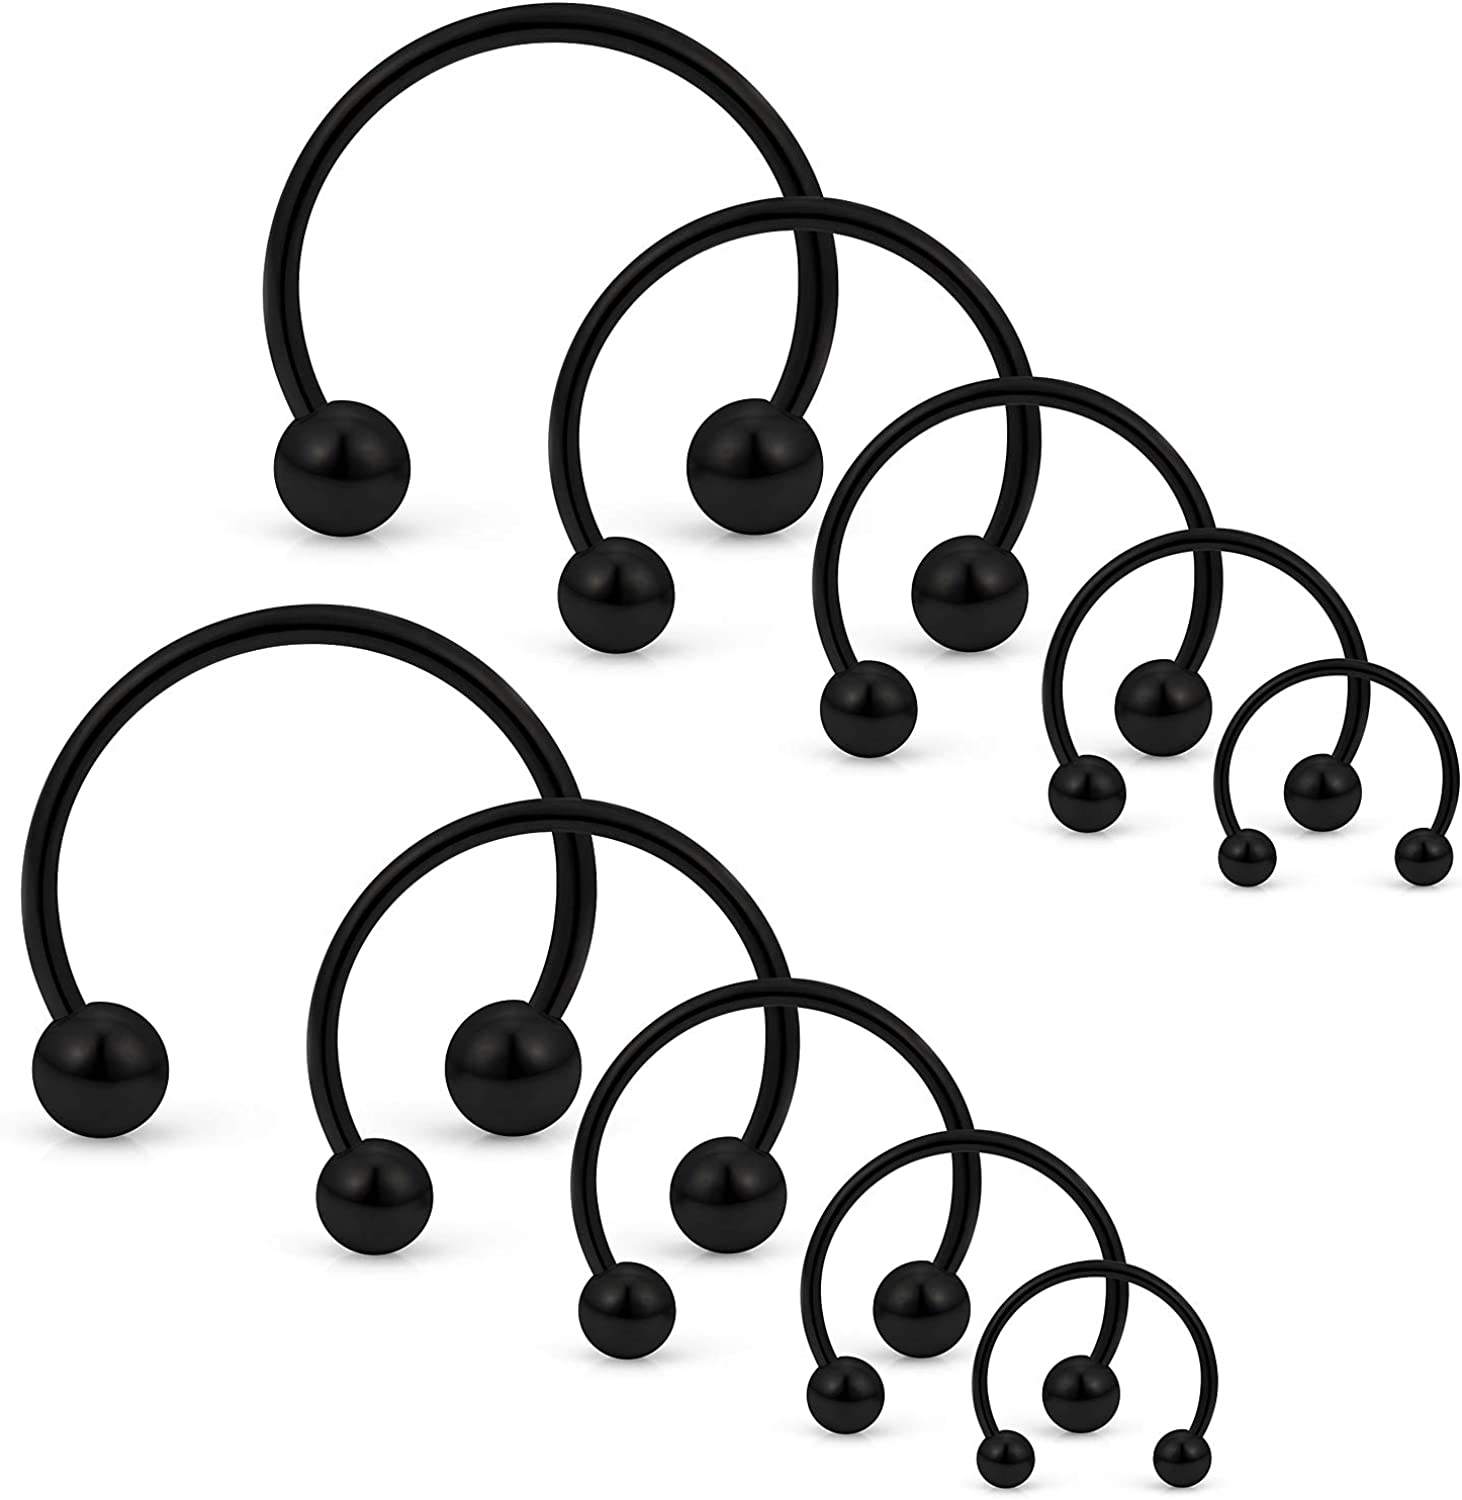 SCERRING 10PCS 20G Stainless Steel Horseshoe Septum Ring Nose Rings Hoop Helix Daith Cartilage Tragus Earrings Eyebrow Body Piercing Jewelry 6-14mm